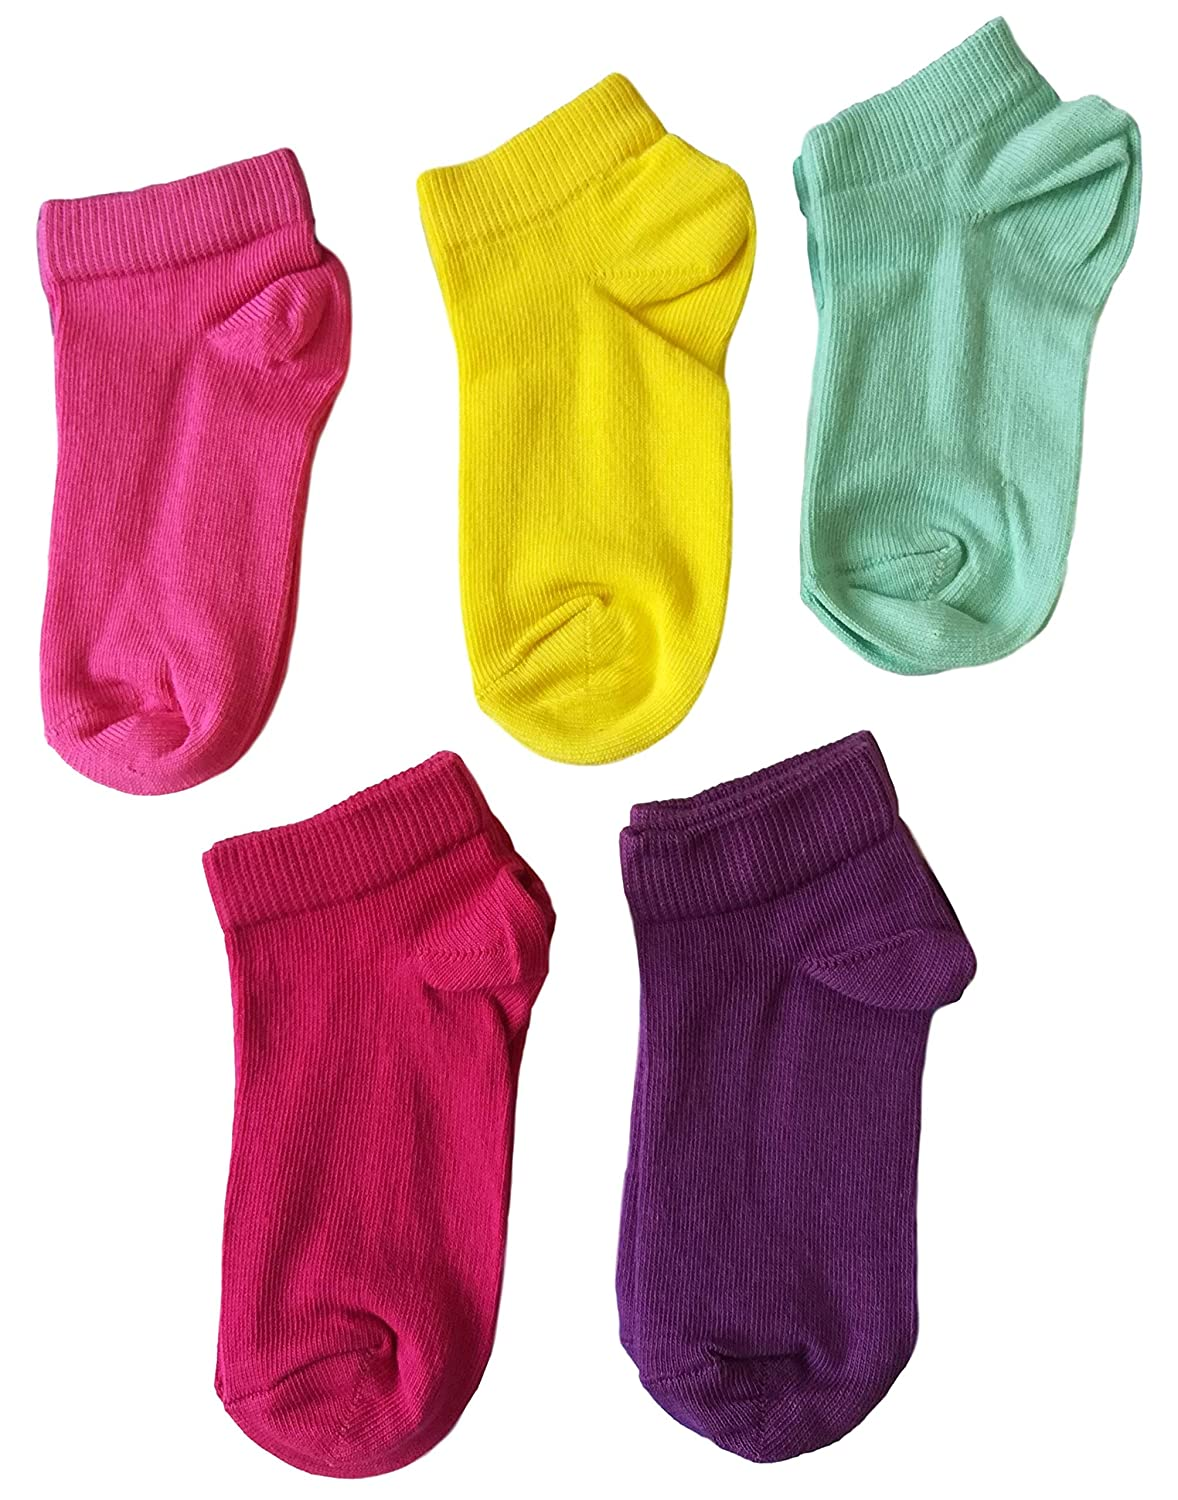 LUXOR Egyptian cotton socks low cut for school and play